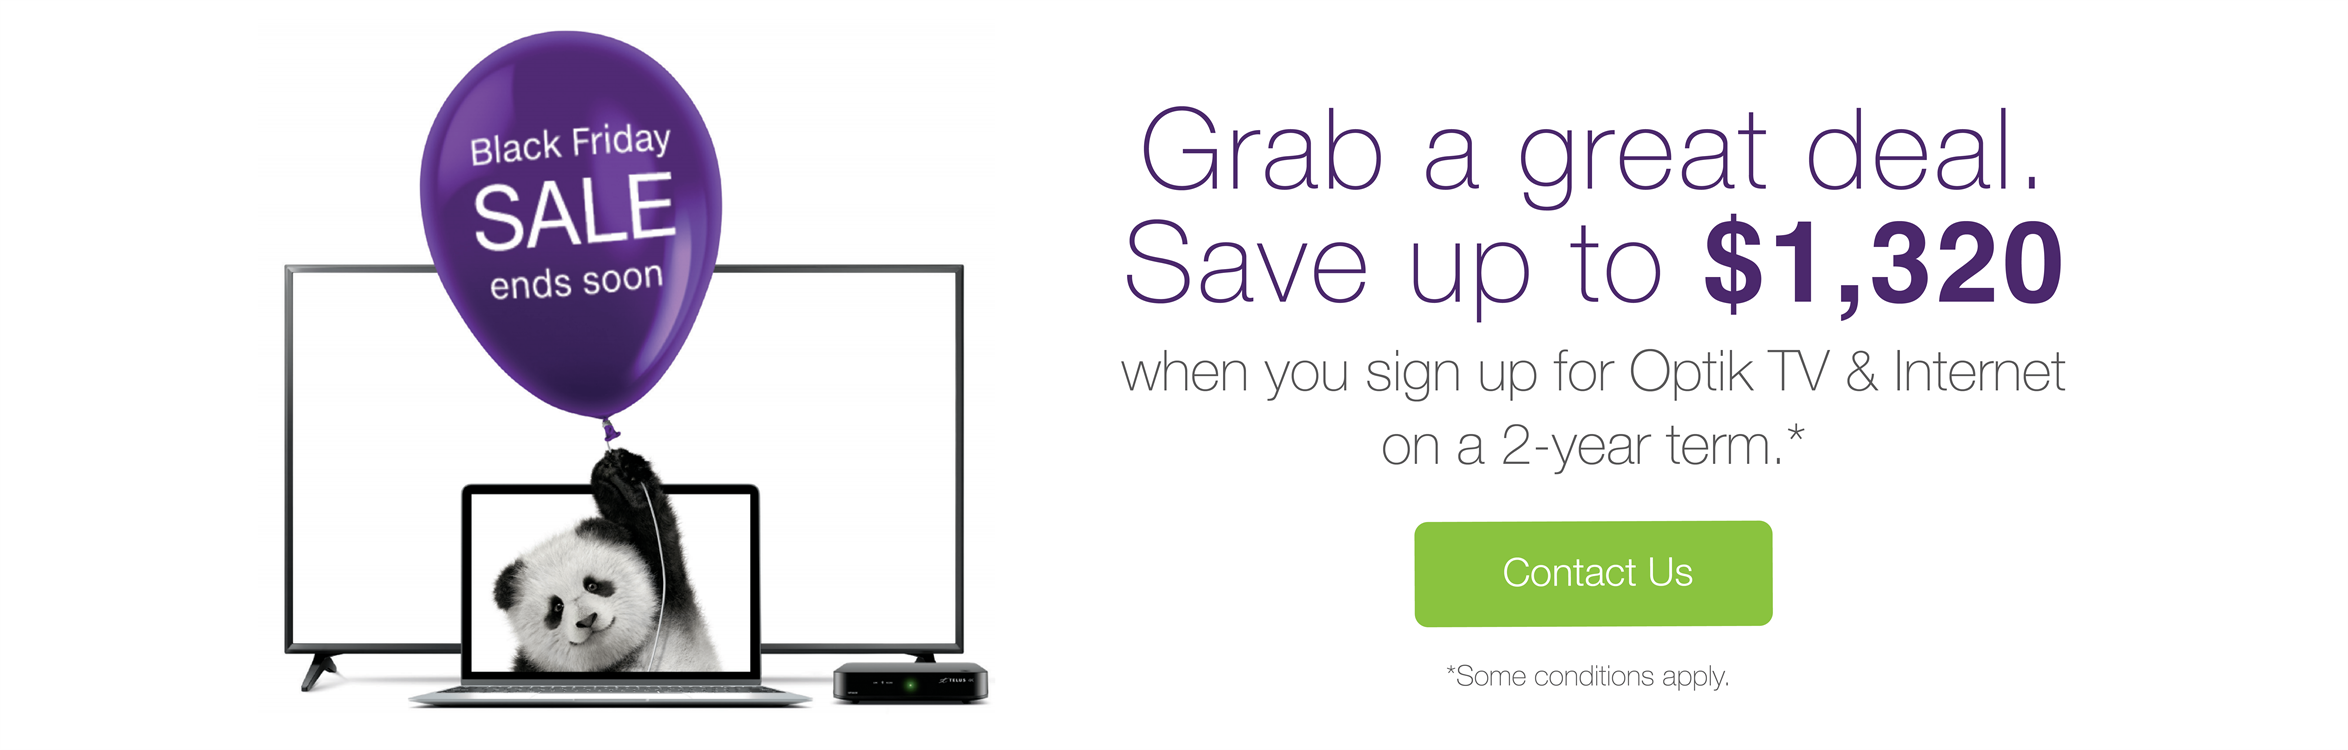 Black Friday TELUS Optik TV and Internet